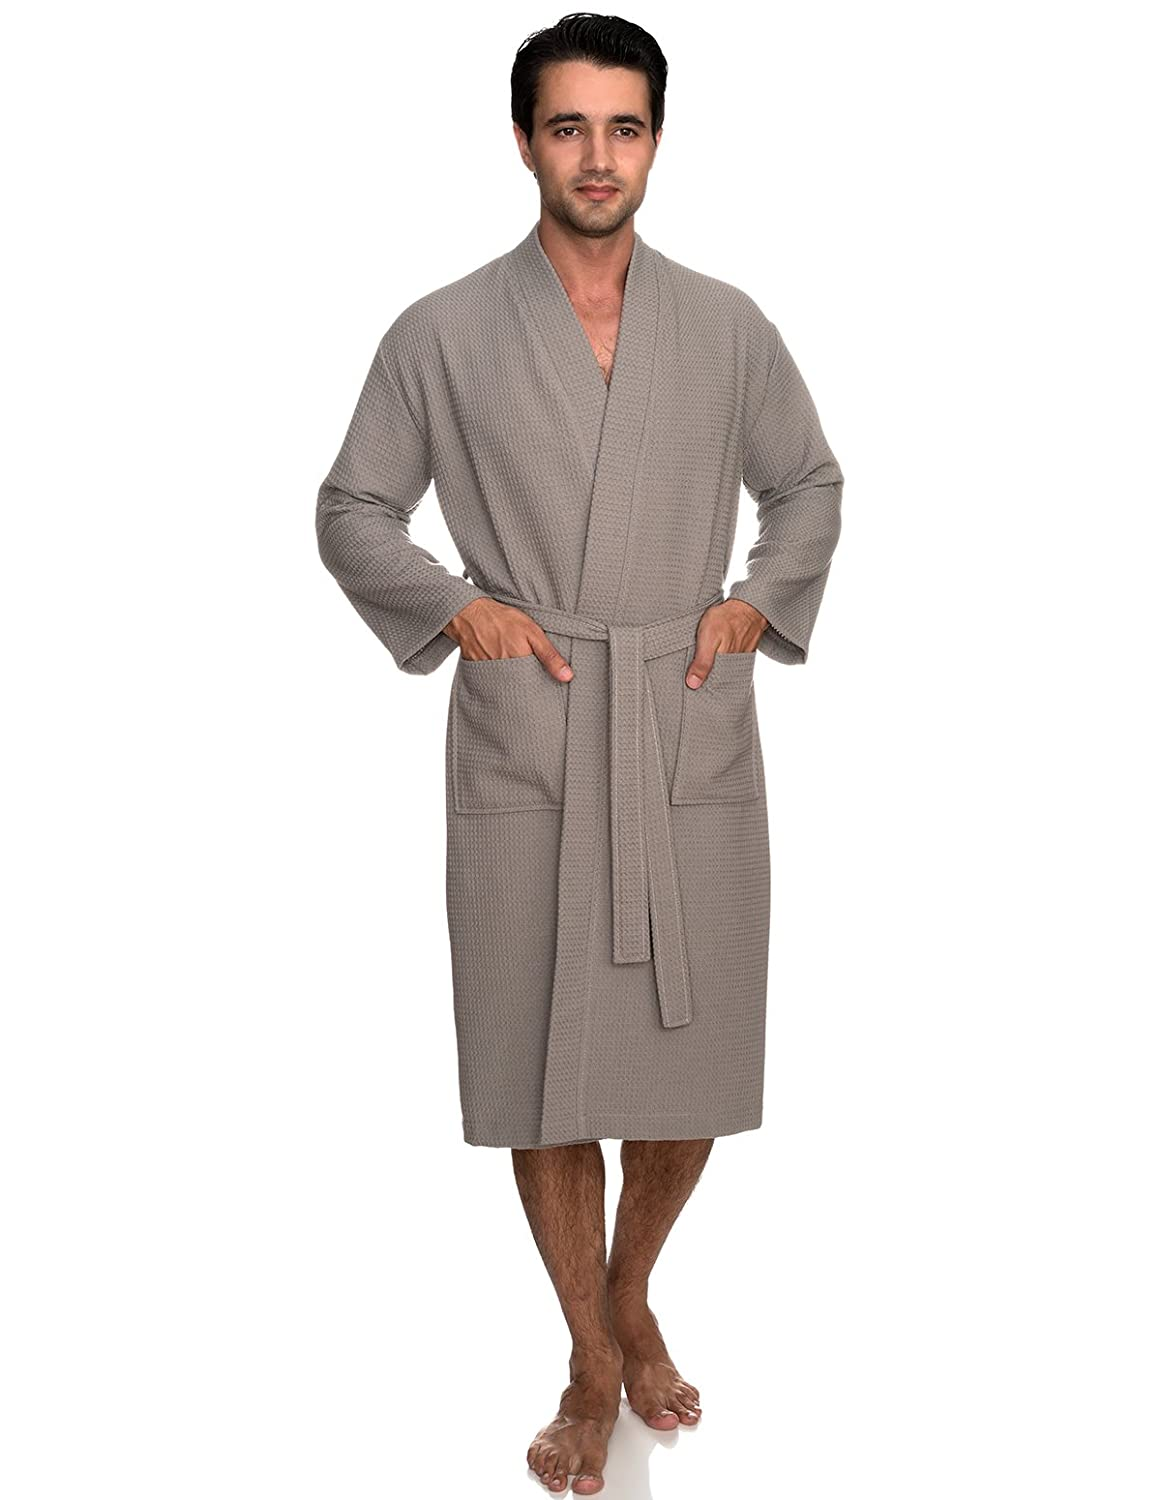 d474b9670b TowelSelections Men s Robe